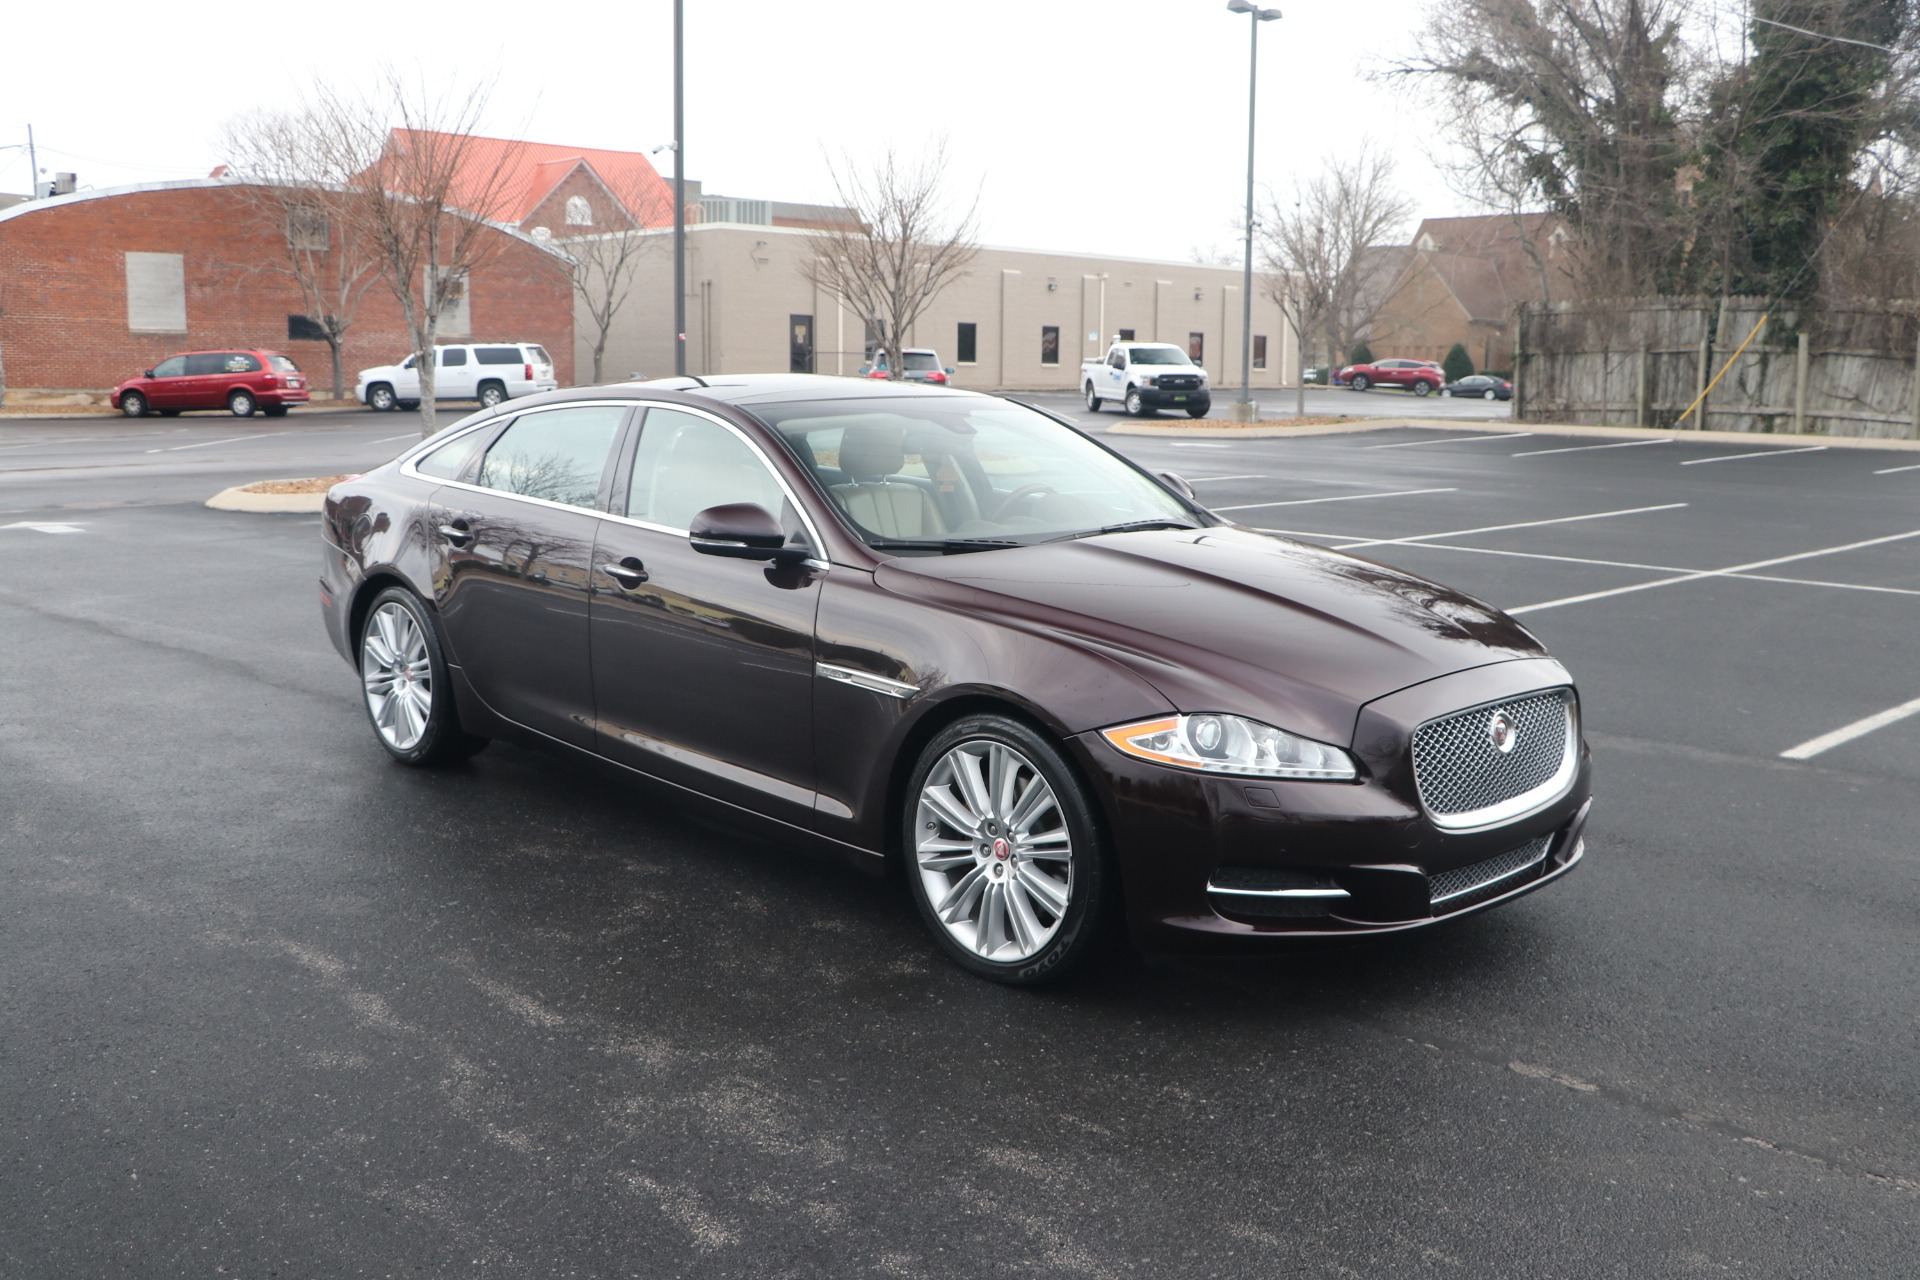 Used 2015 JAGUAR XJ PORTFOLIO PREMIUM EDITION W/NAV for sale Sold at Auto Collection in Murfreesboro TN 37130 1